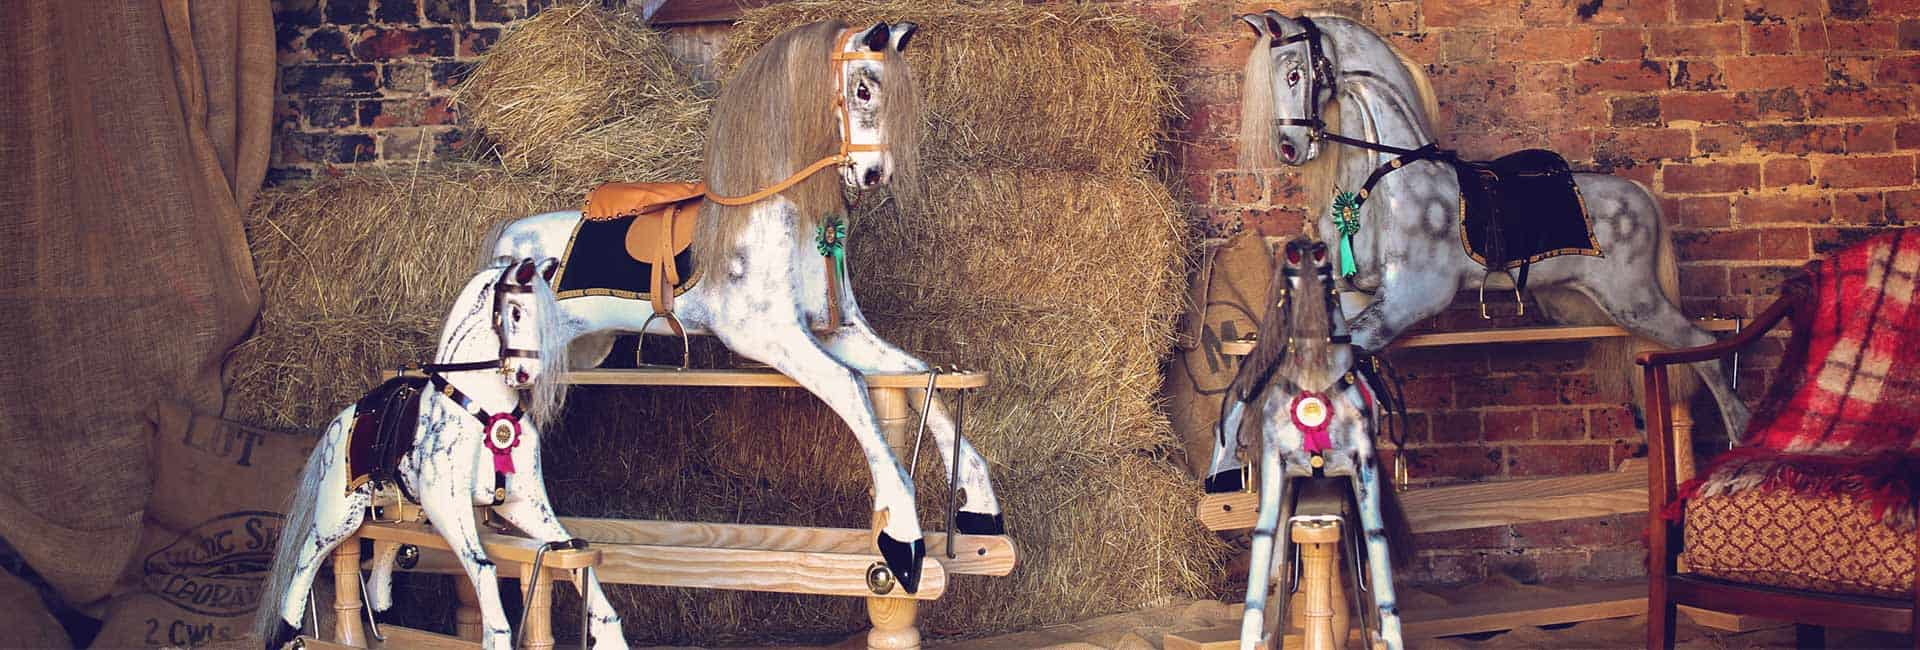 Two dapple grey horses in a stable